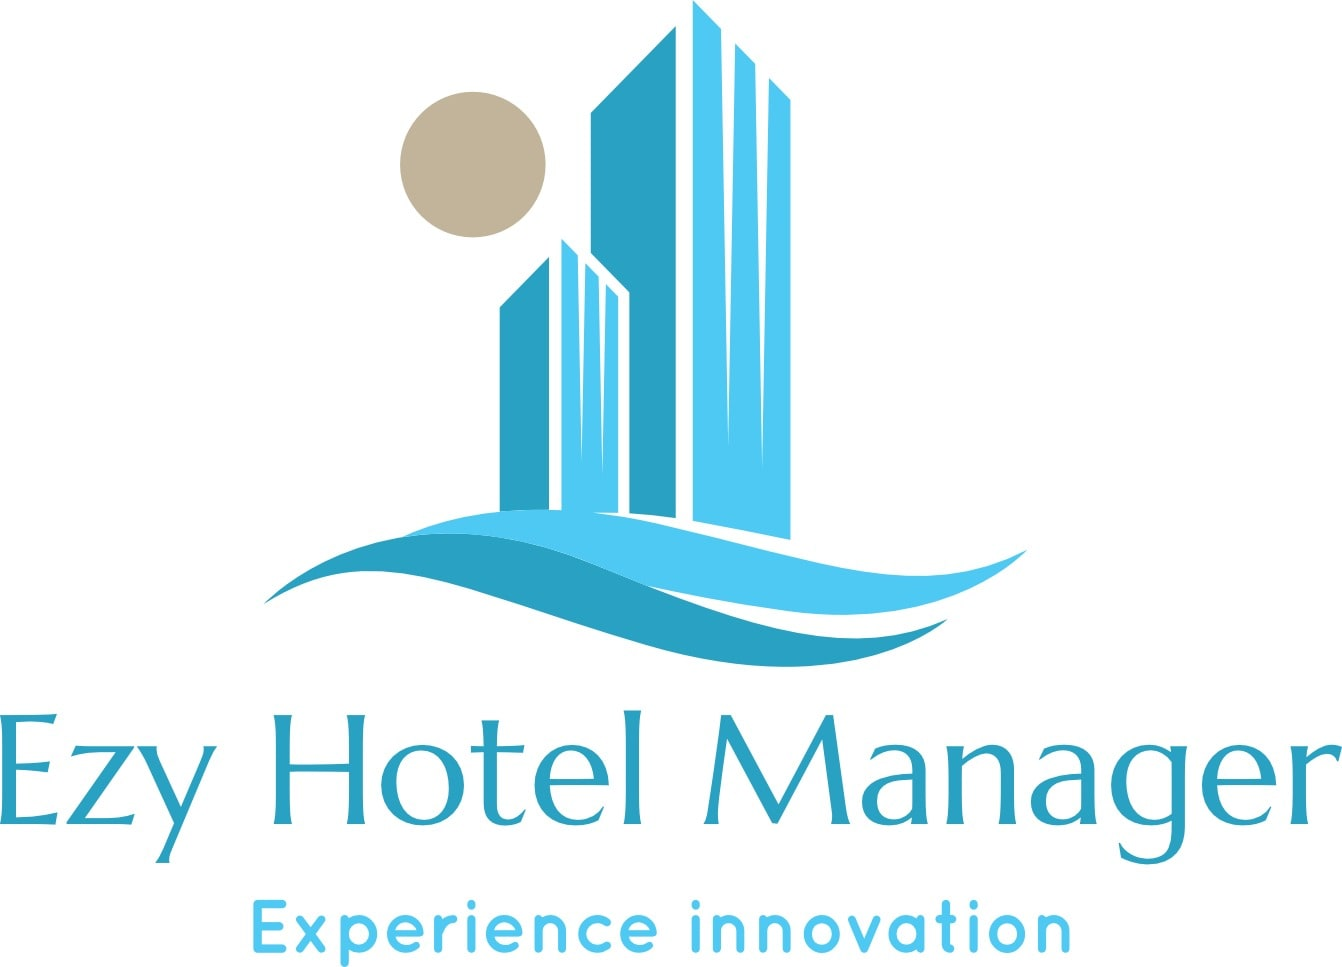 Ezy Hotel Manager